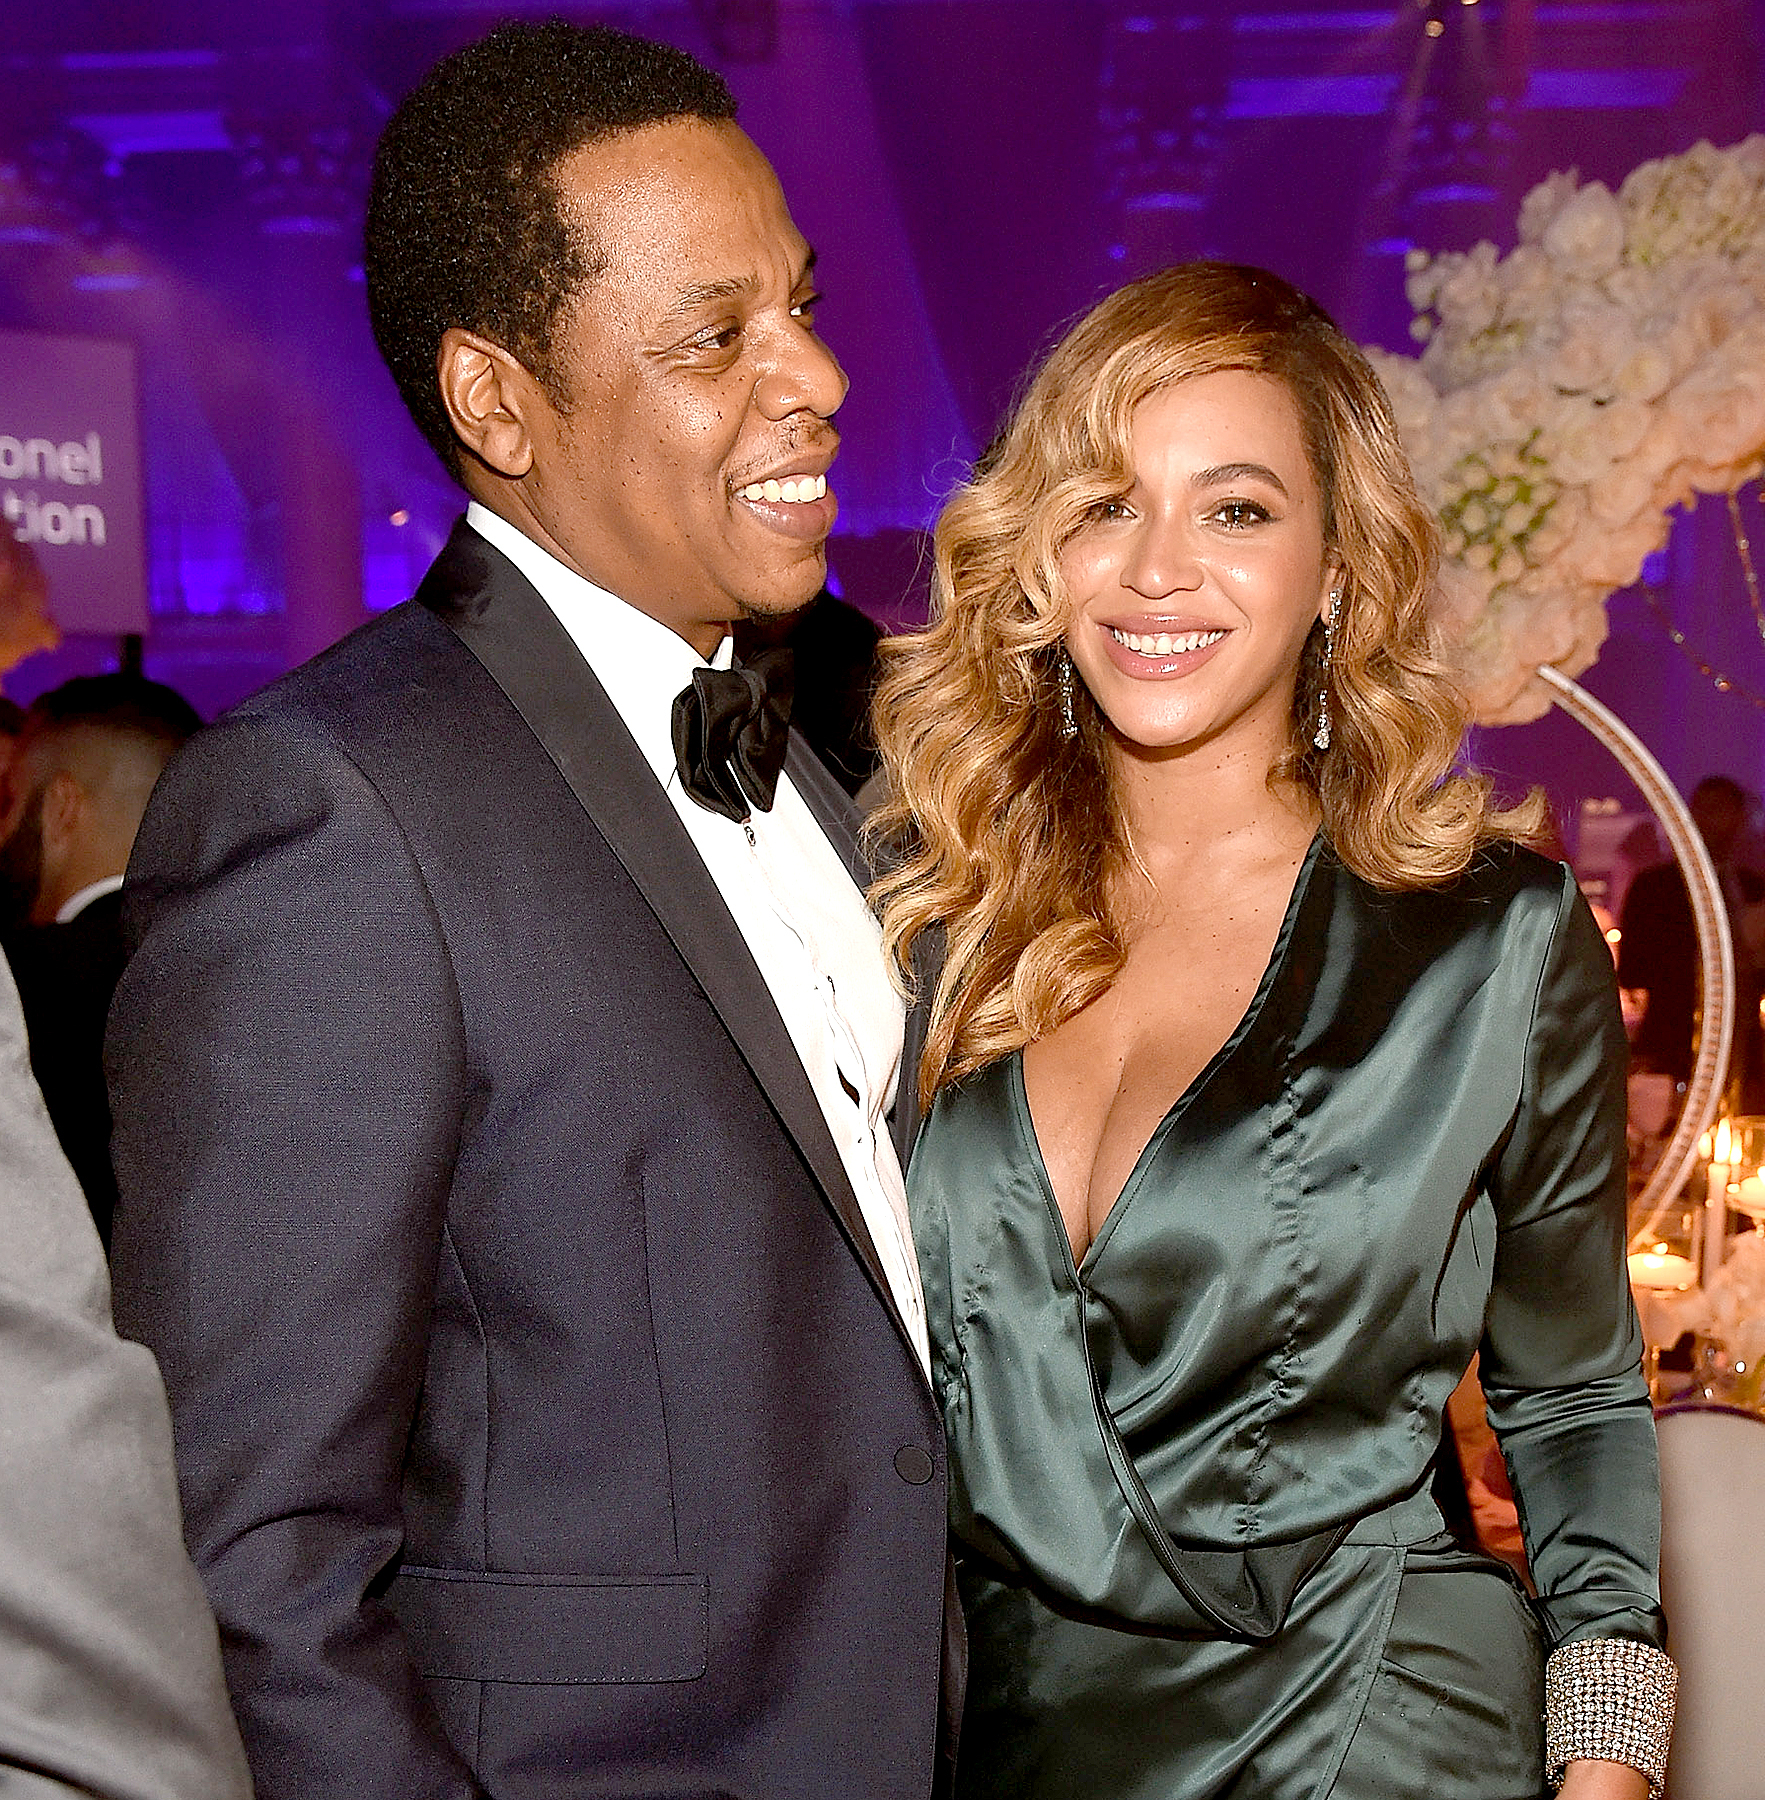 Jay-Z and Beyonce attend Rihanna's 3rd Annual Diamond Ball Benefitting The Clara Lionel Foundation at Cipriani Wall Street on September 14, 2017 in New York City.